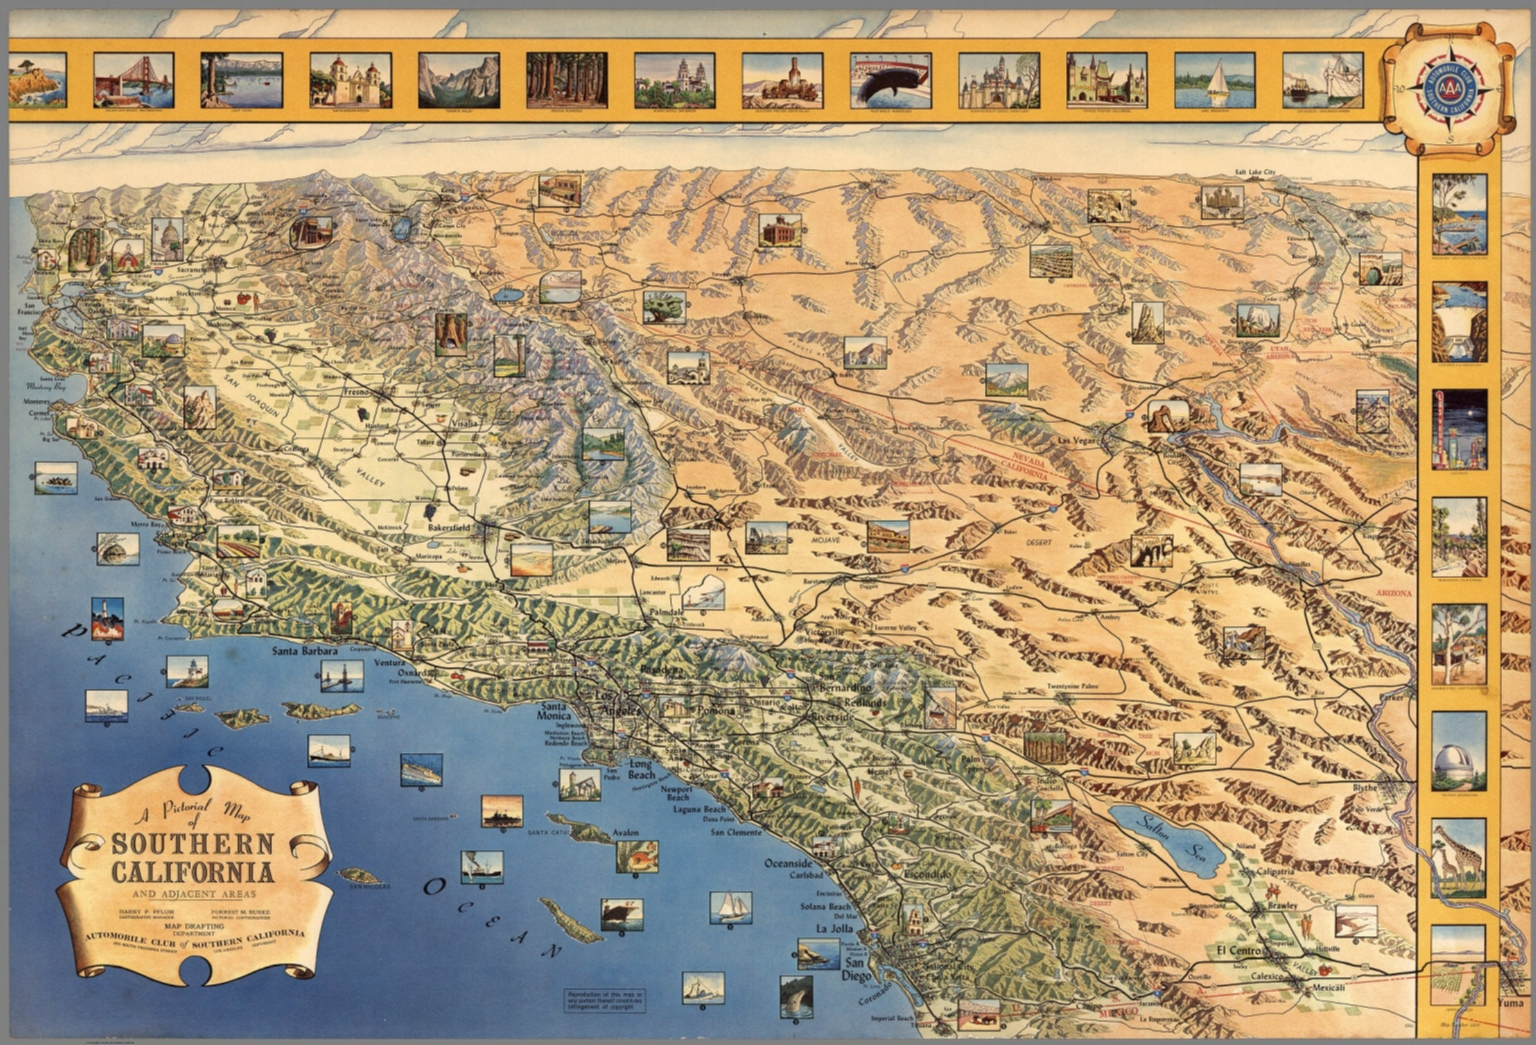 A Pictorial Map Of Southern California And Adjacent Areas David - Southern ca map